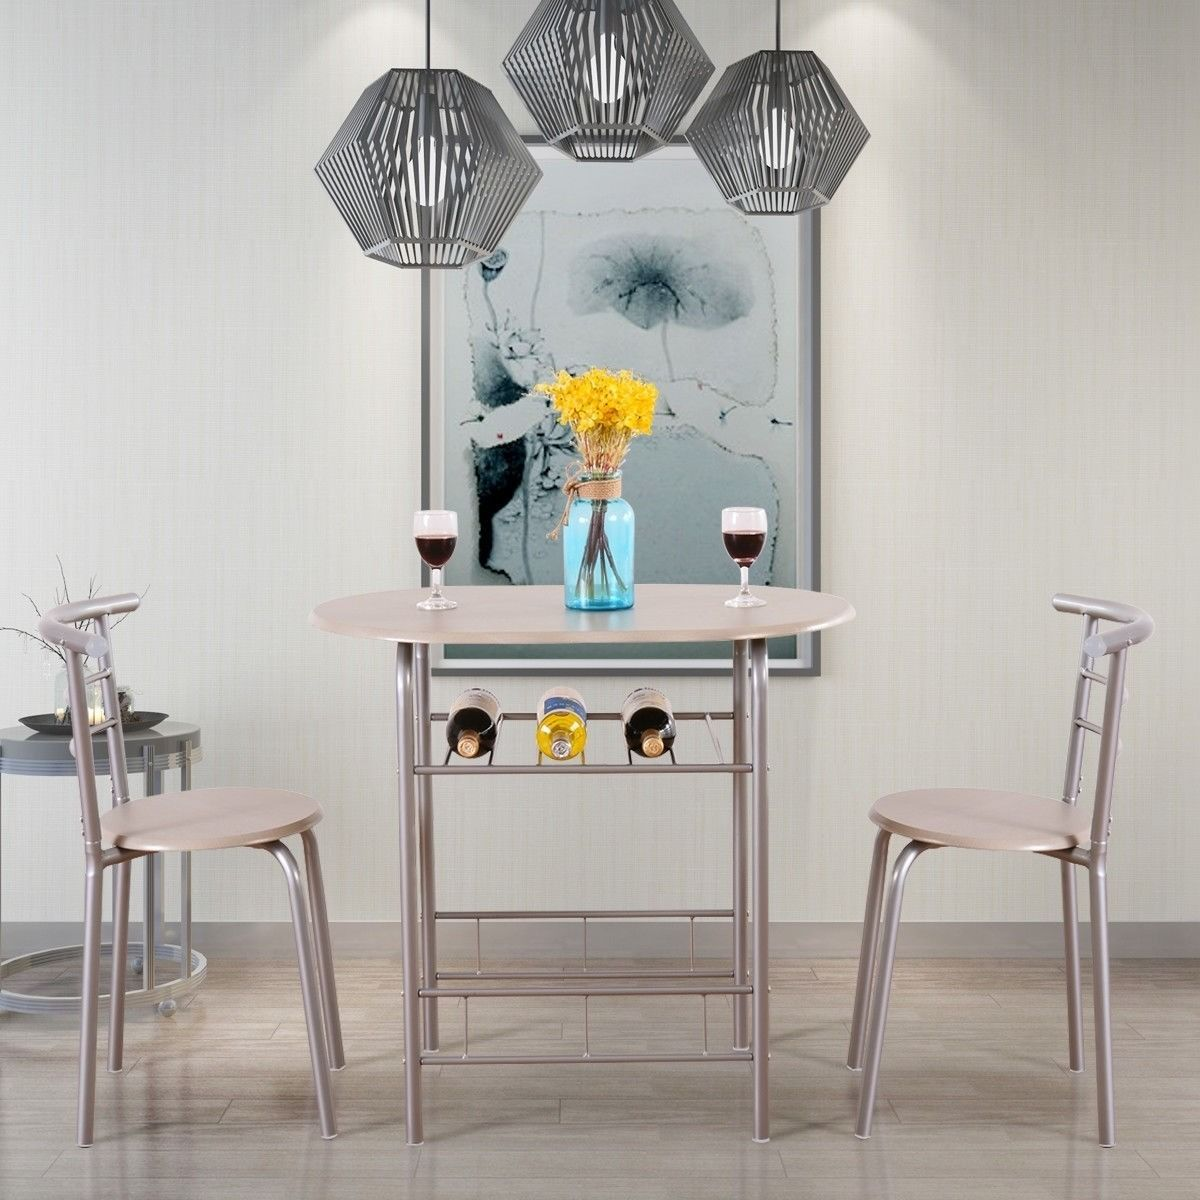 Greenforest 3 Piece Dining Table And Chairs Set Modern Breakfast